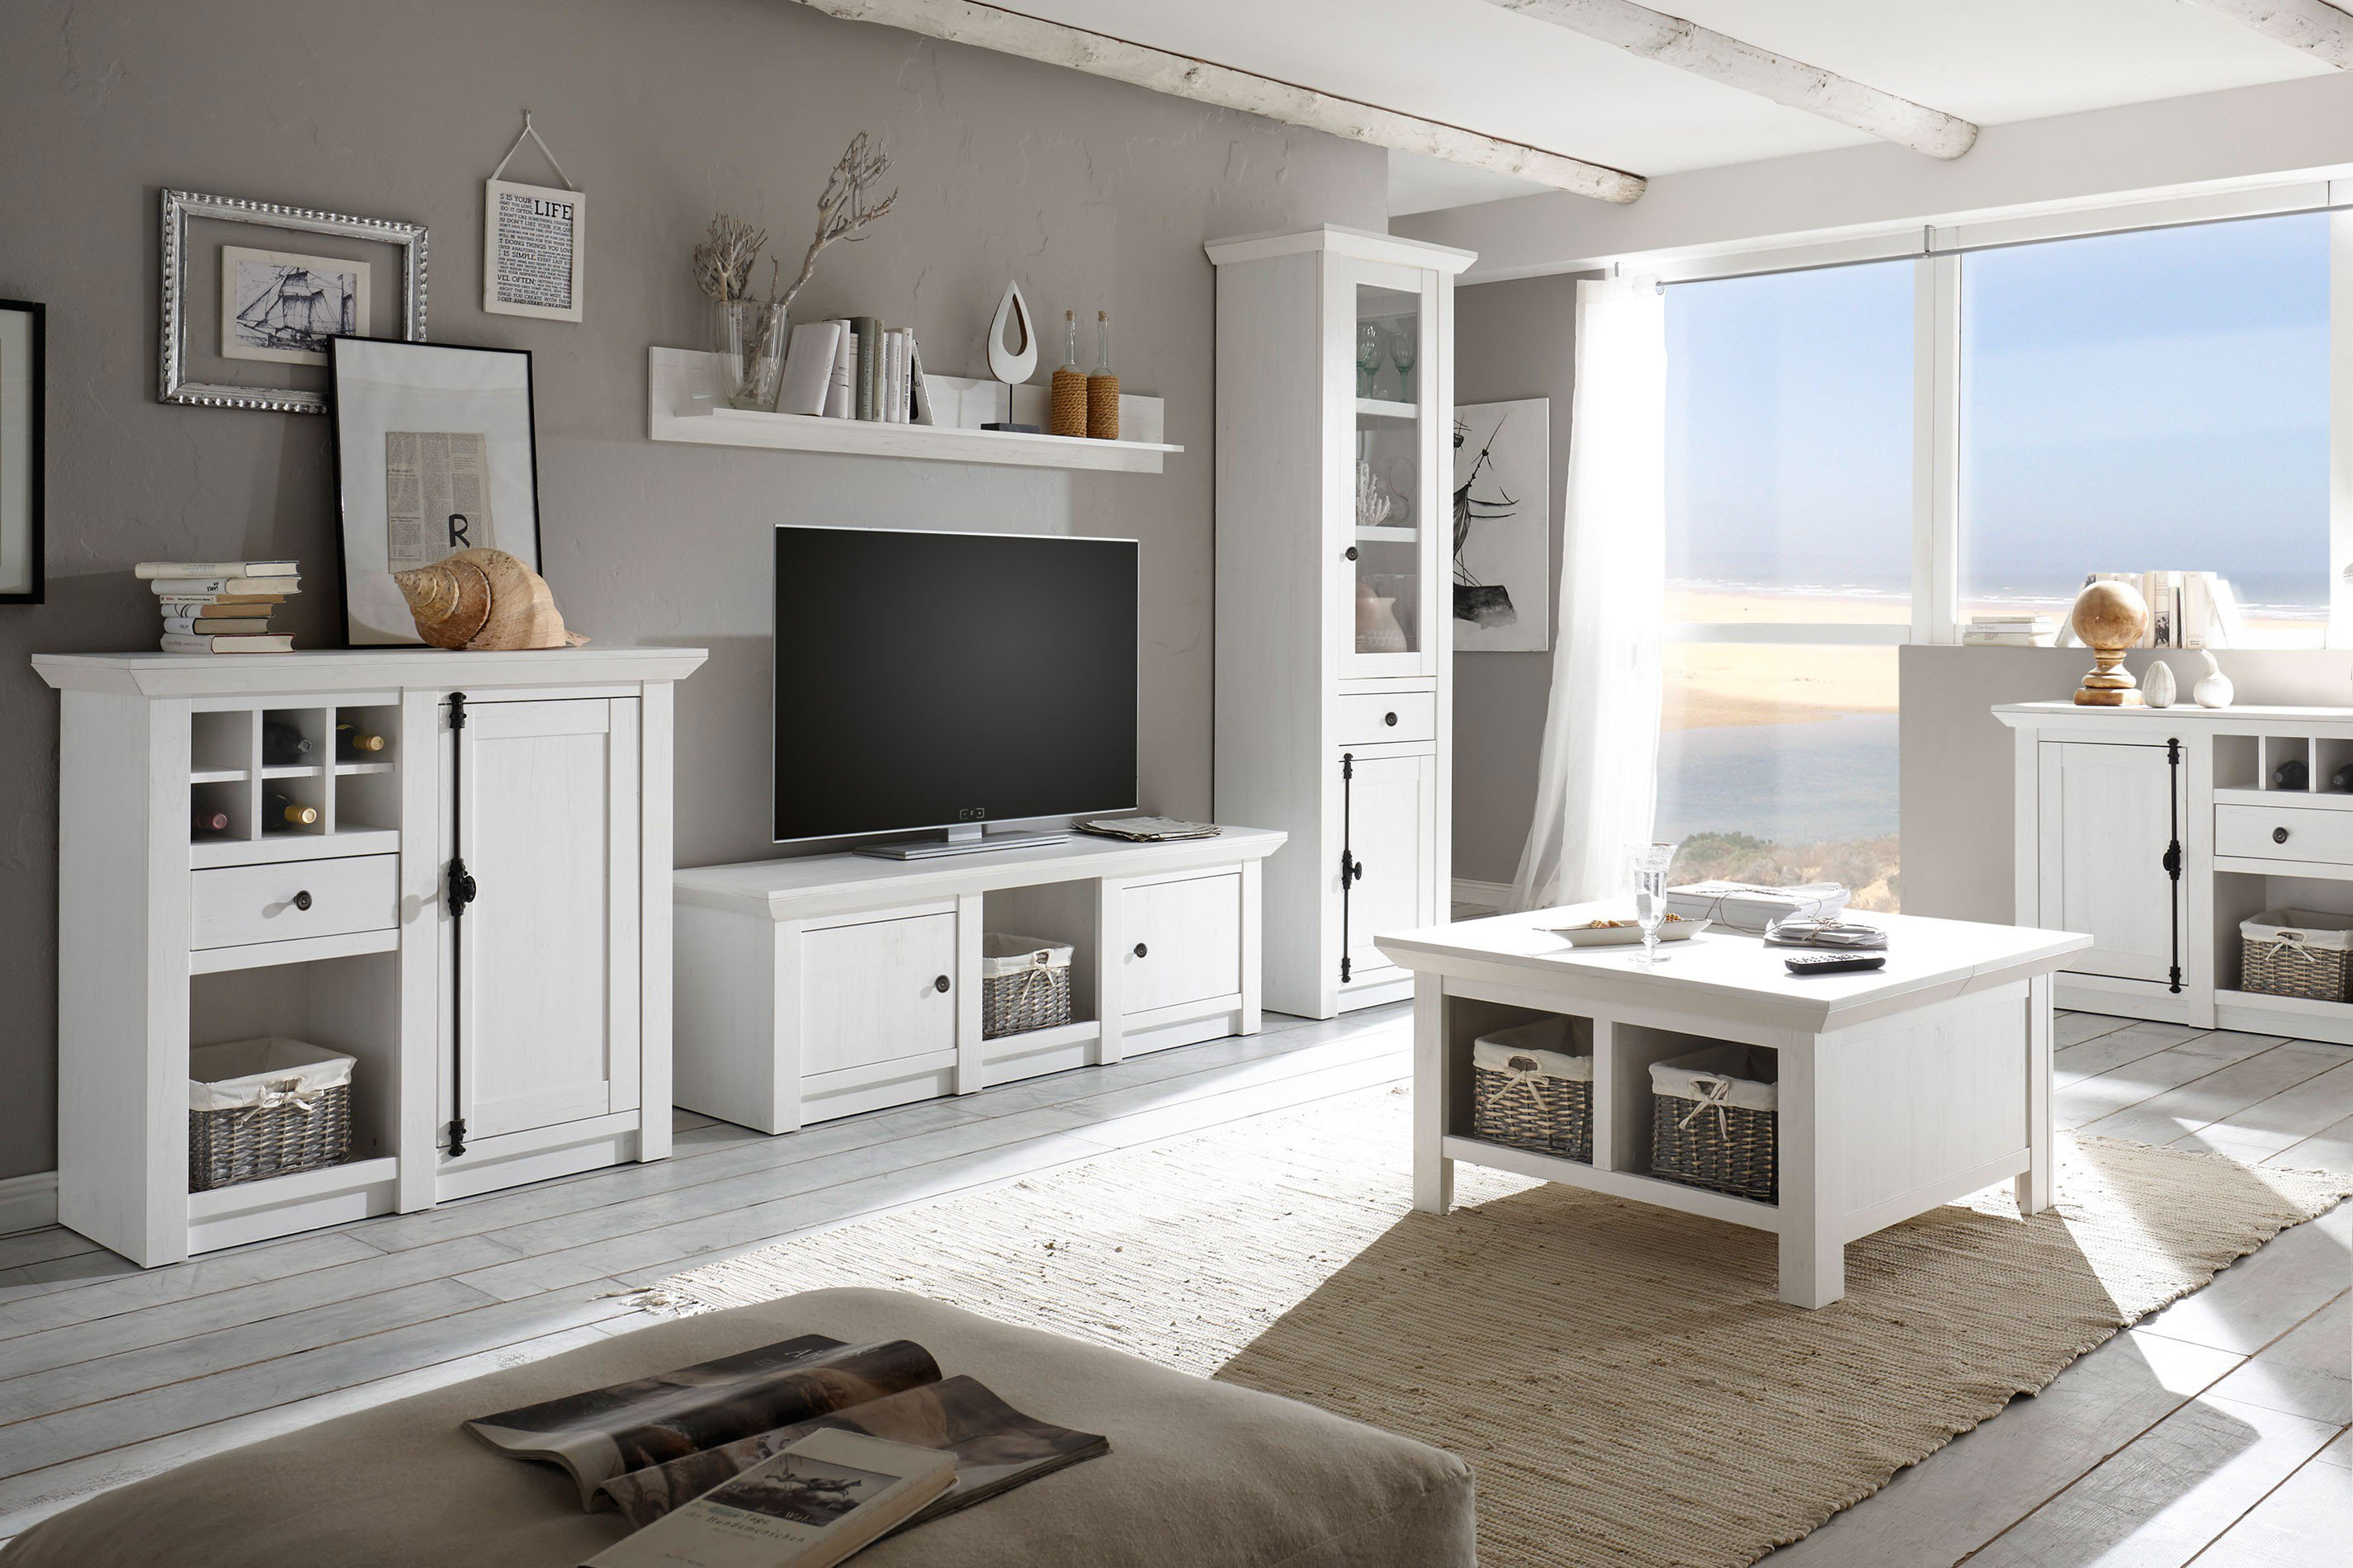 imv steinheim wohnwand westerland pinie wei m bel letz ihr online shop. Black Bedroom Furniture Sets. Home Design Ideas